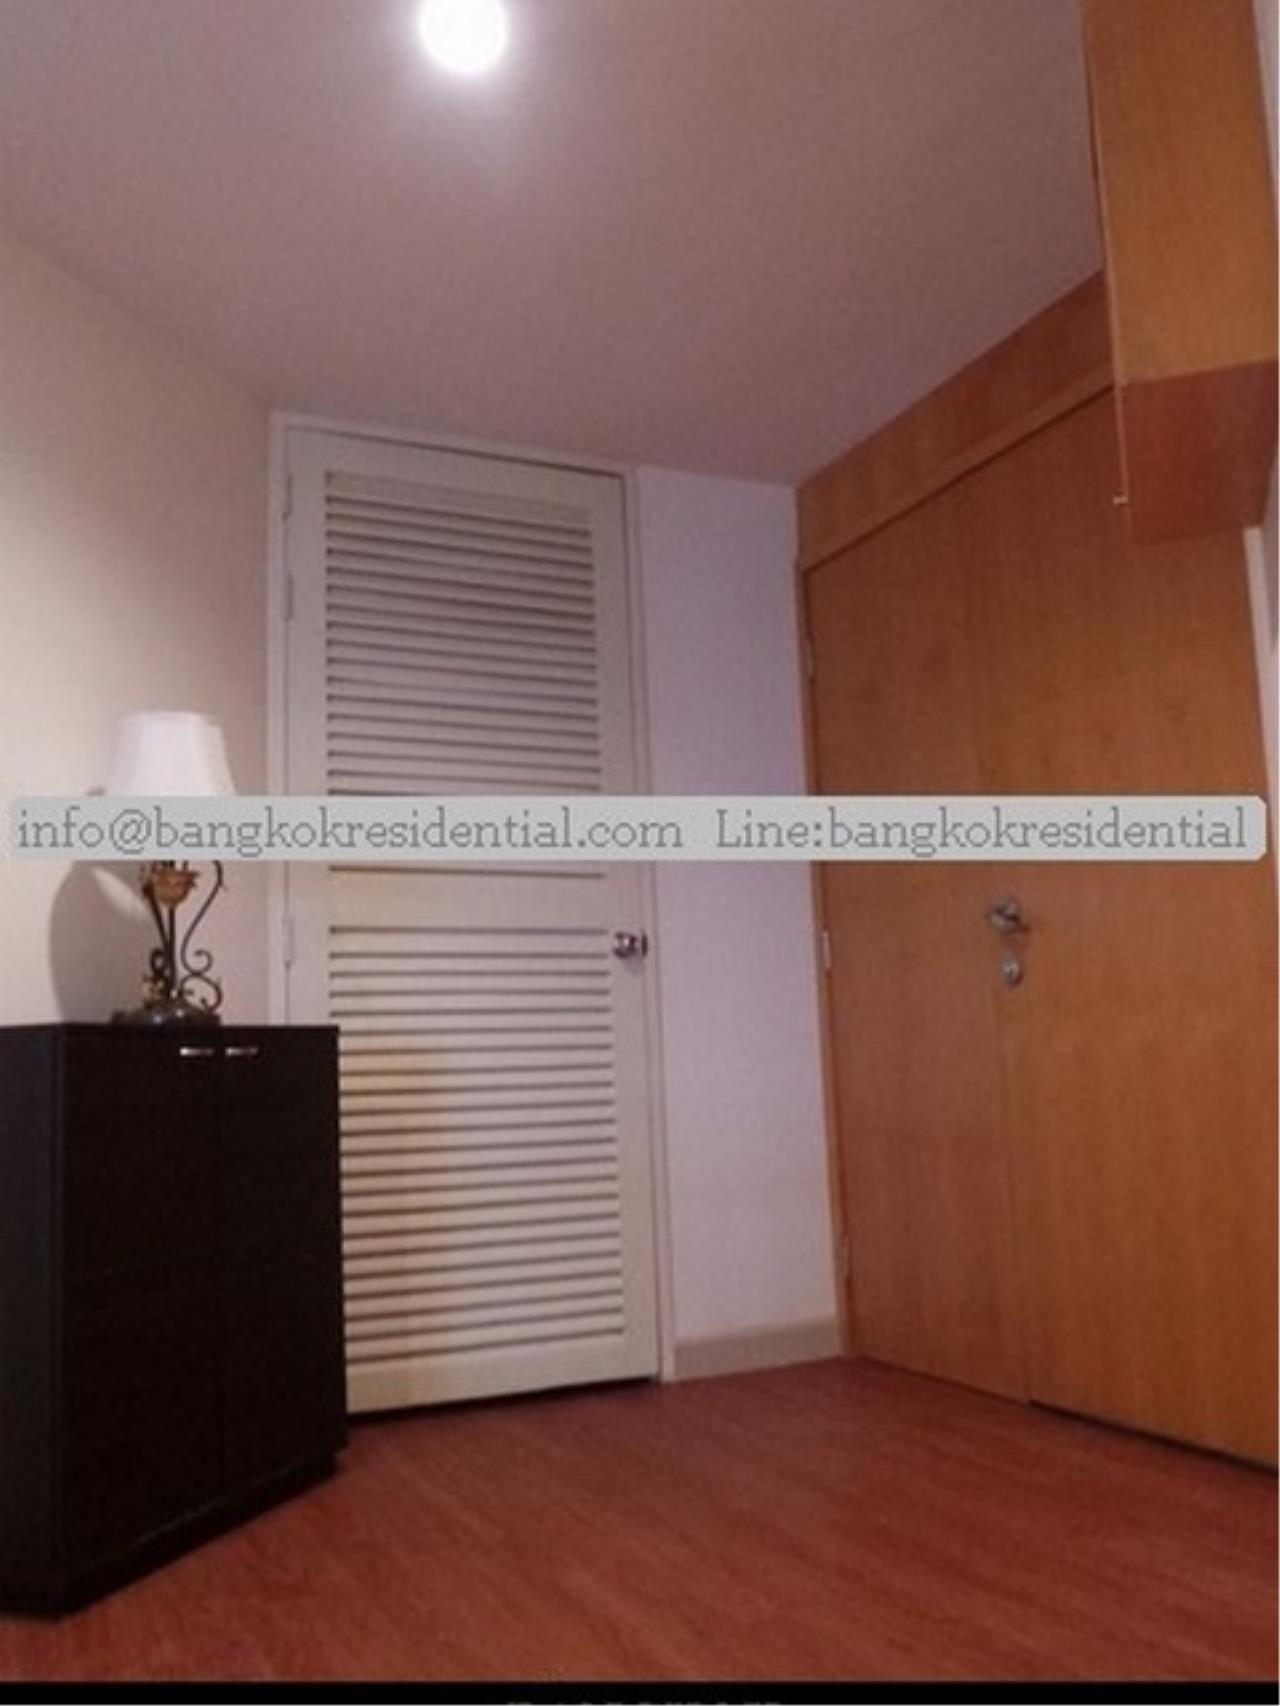 Bangkok Residential Agency's 3BR Tai Ping Tower For Rent (BR4448CD) 13